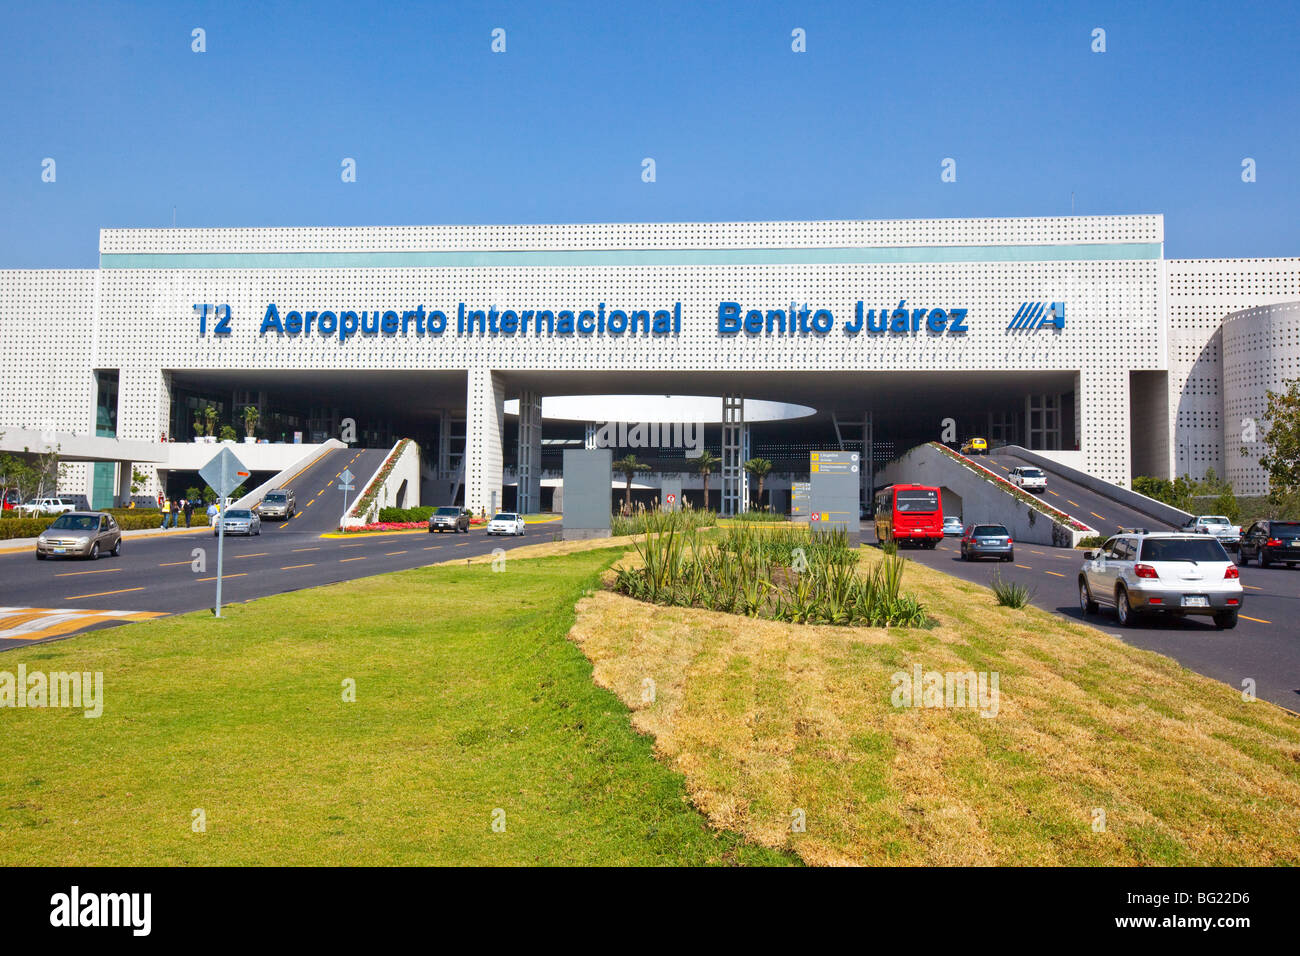 how to get from df to benito juarez airport